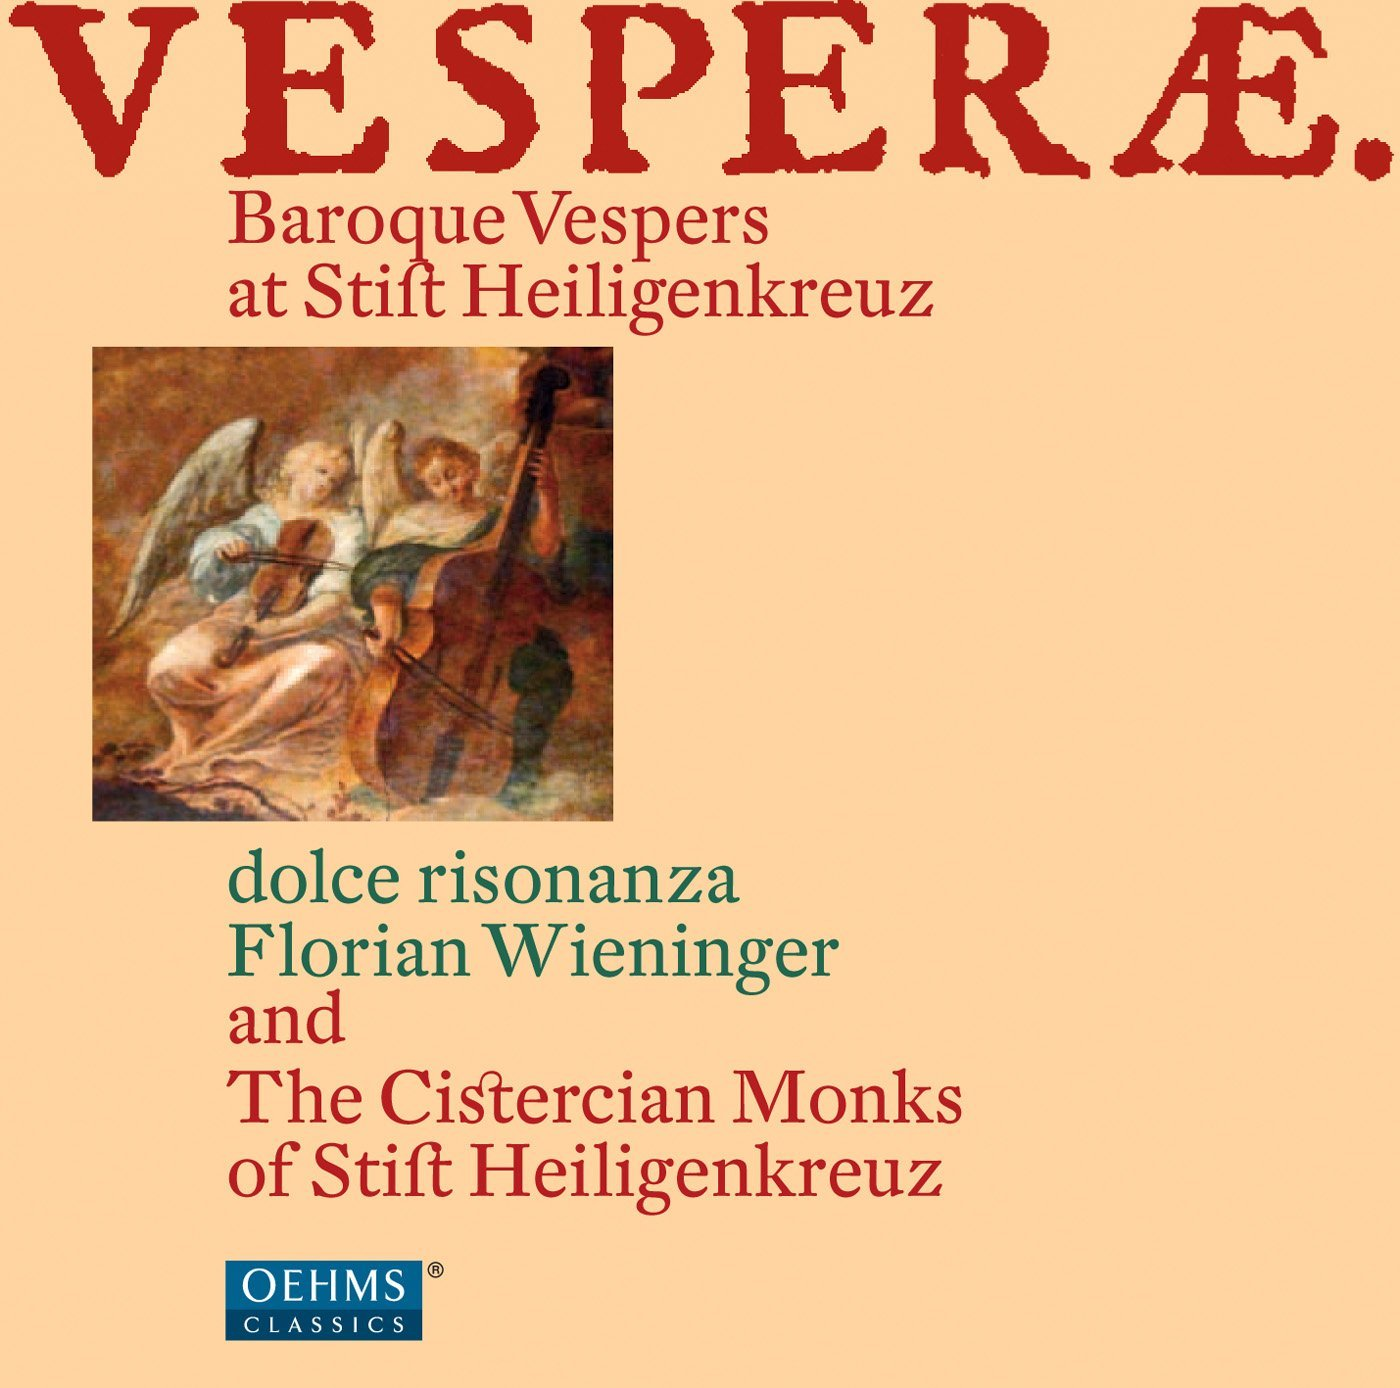 vesperae  baroque vespers at stift heiligenkreuz